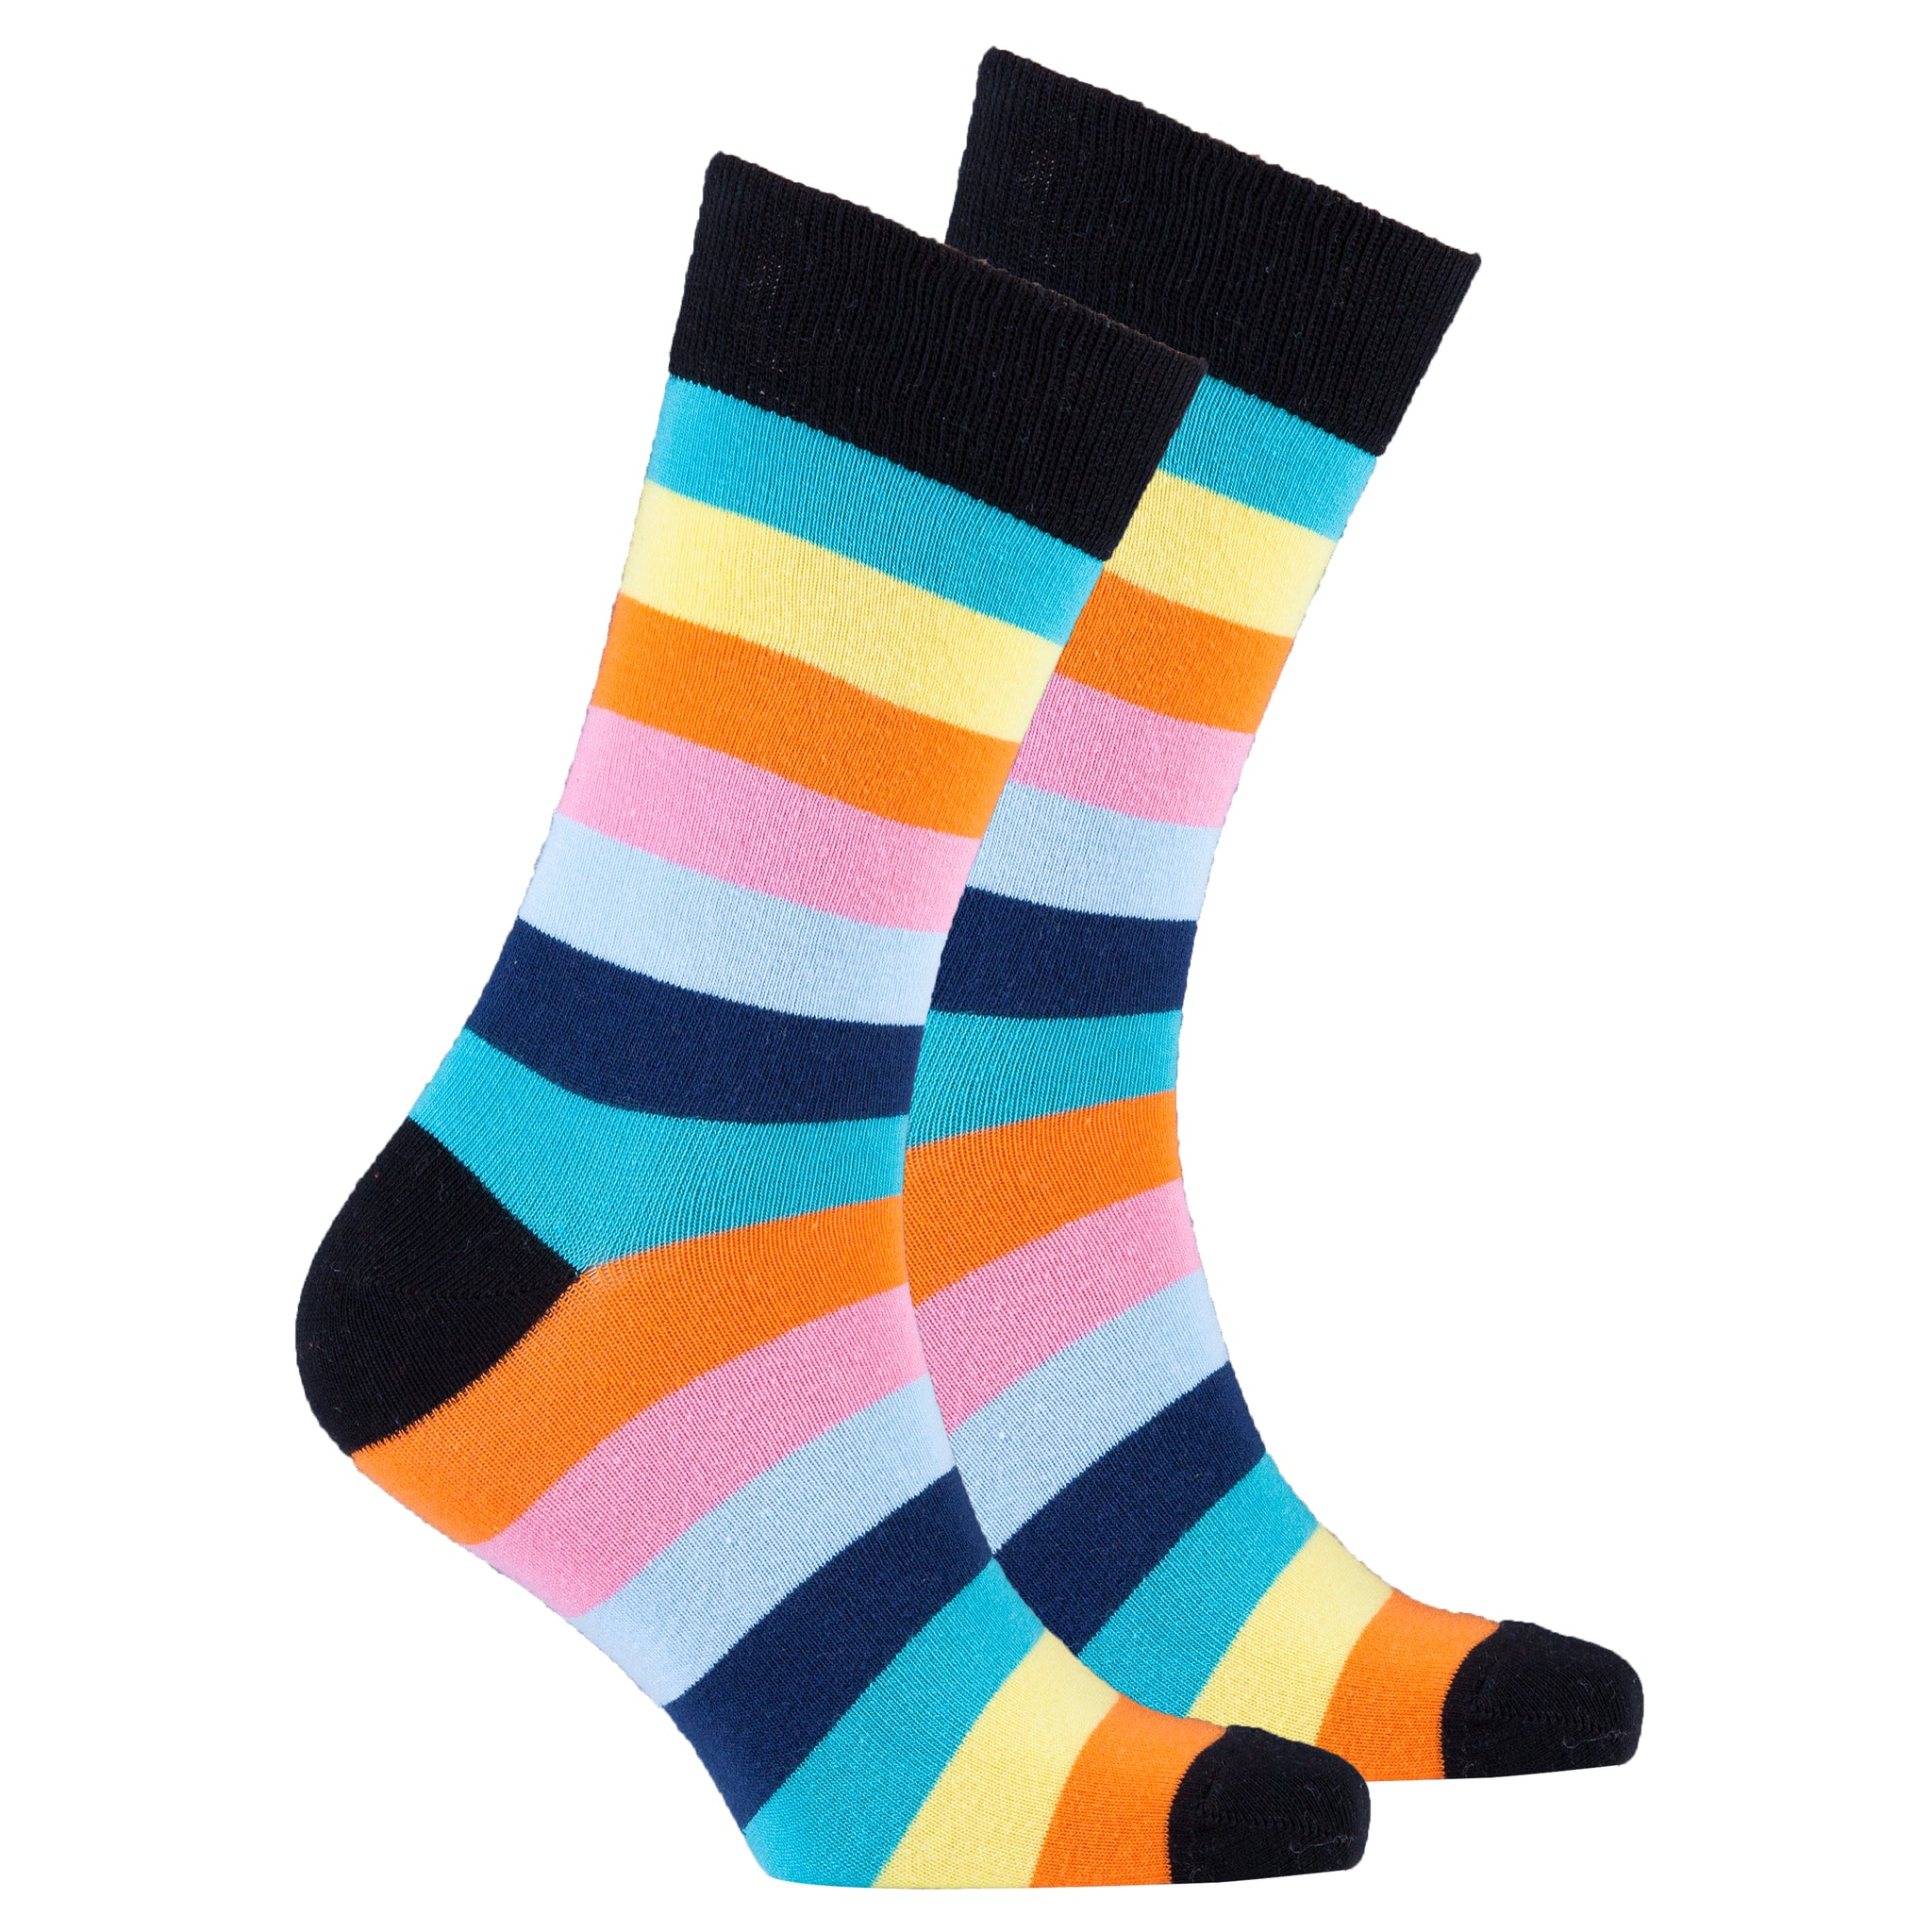 Men's Light Pastel Stripe Socks